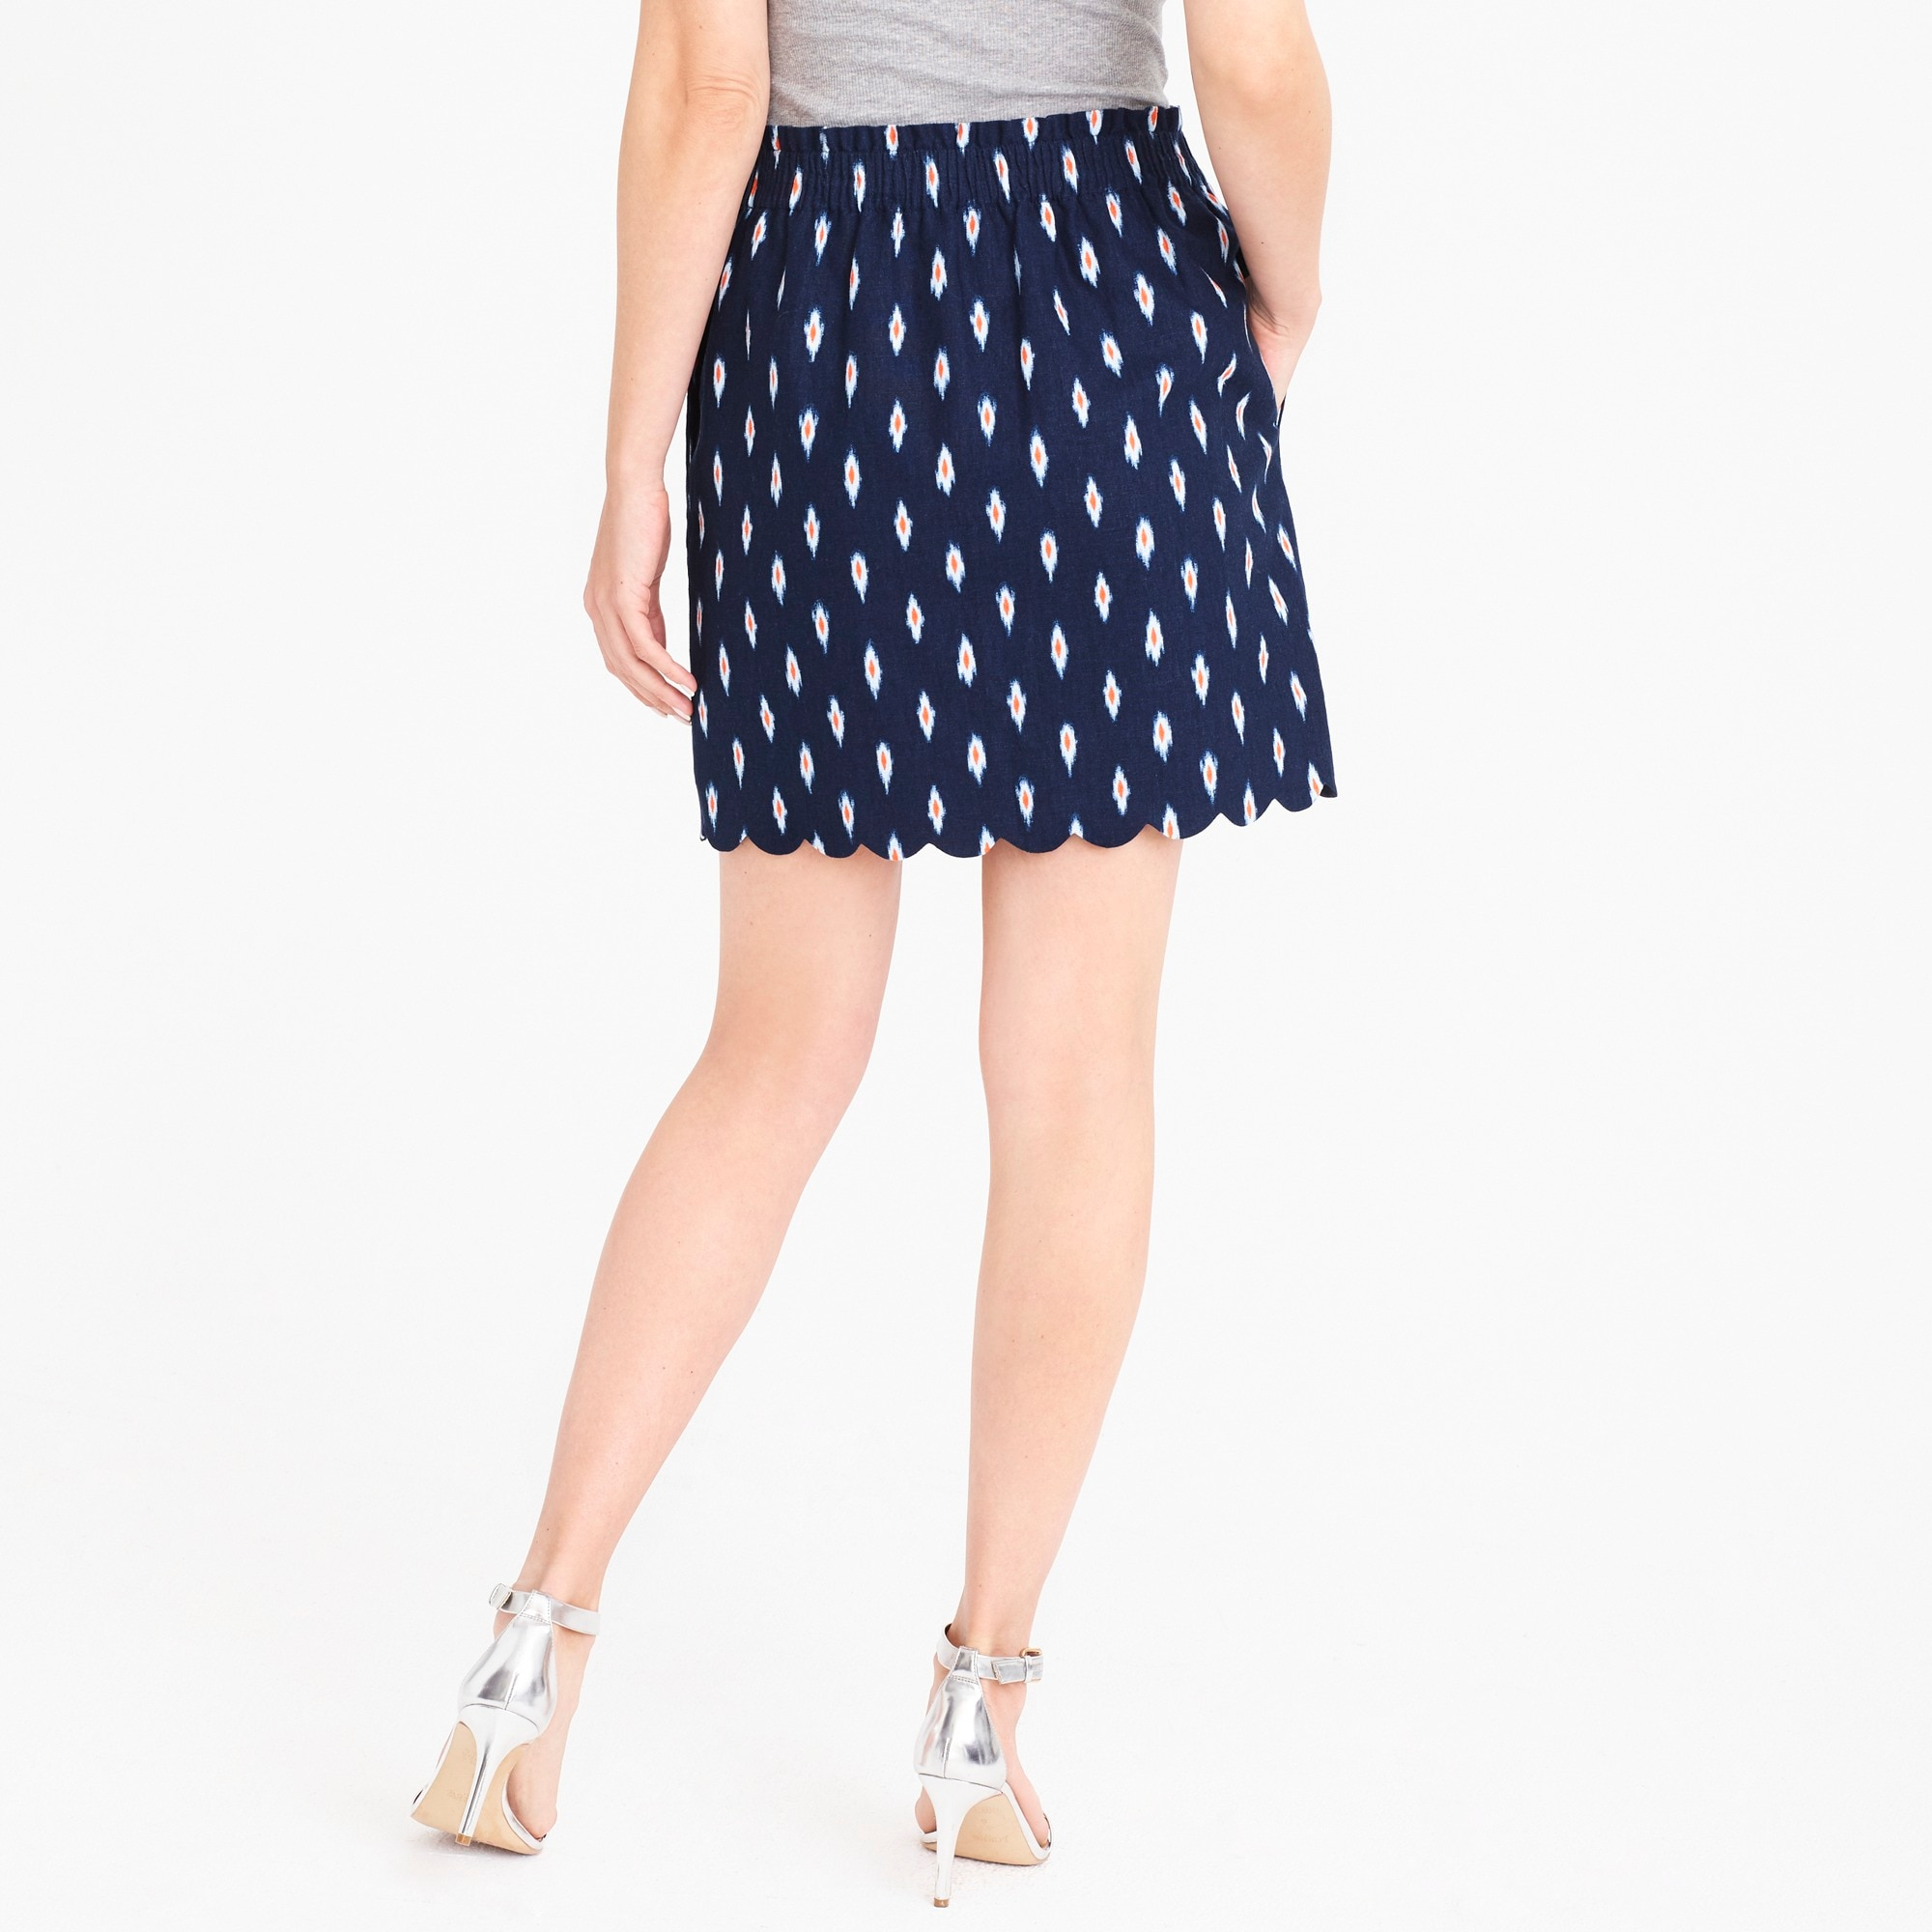 Printed scalloped sidewalk skirt